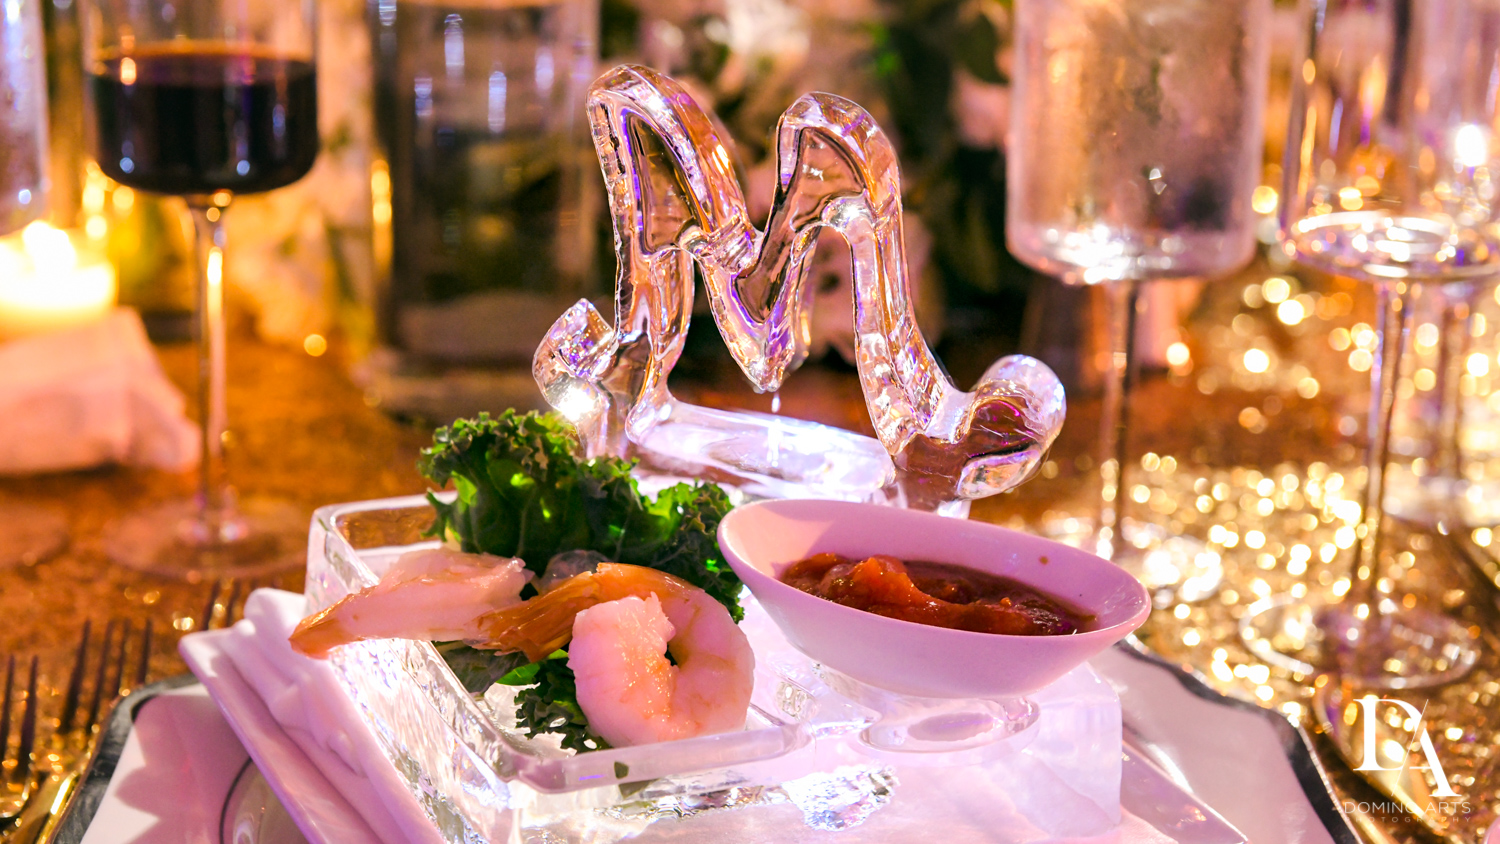 ice sculptures and catering at Madeline in Paris theme Bat Mitzvah at Boca Raton Resort and Club by Domino Arts Photography